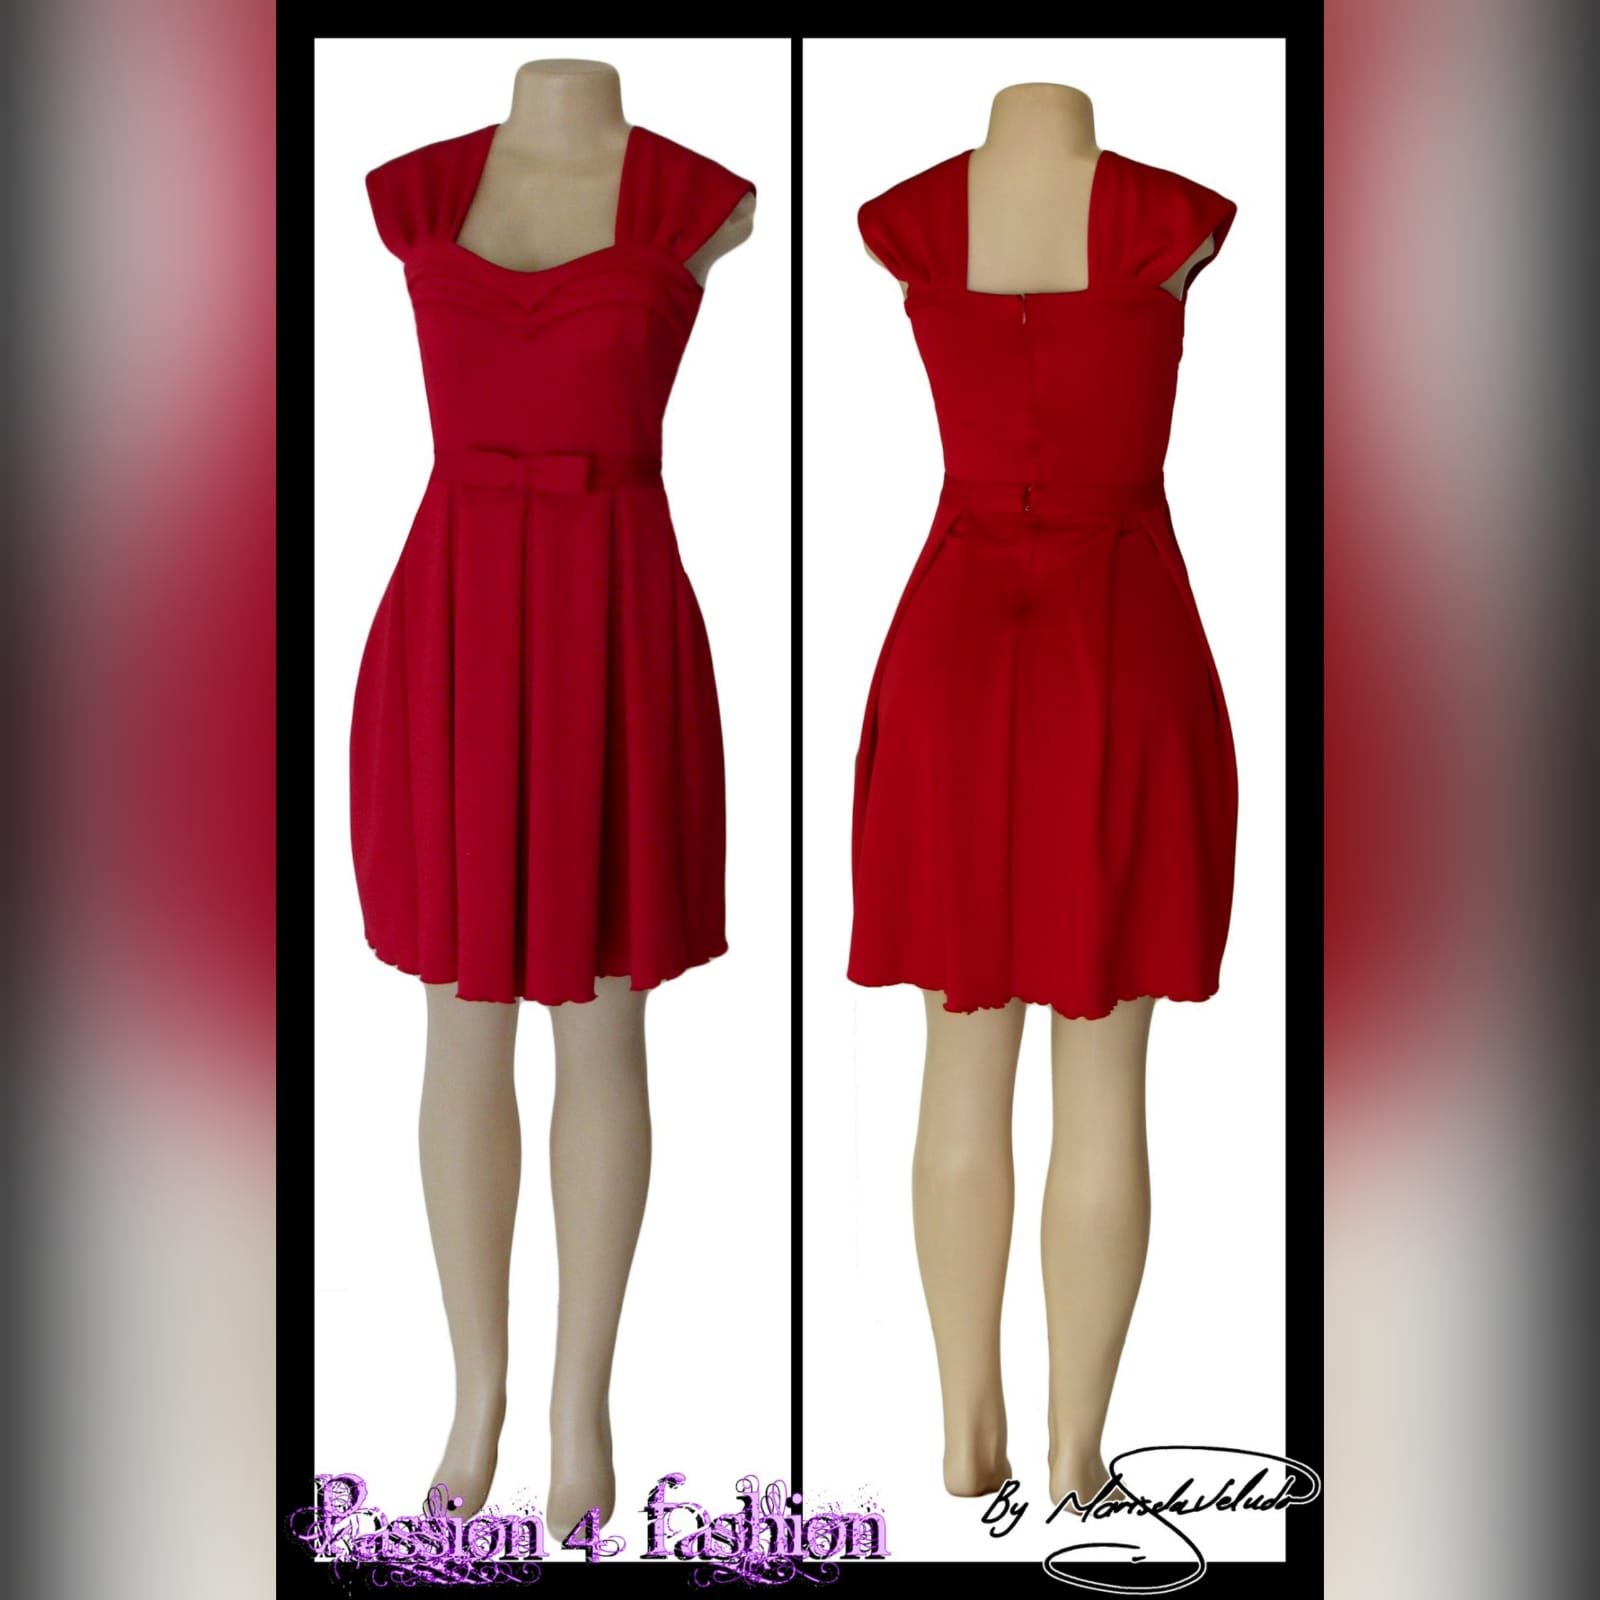 Short red pleated evening dress 2 short red pleated evening dress with a pleated sweetheart neckline and a detachable belt with bow detail